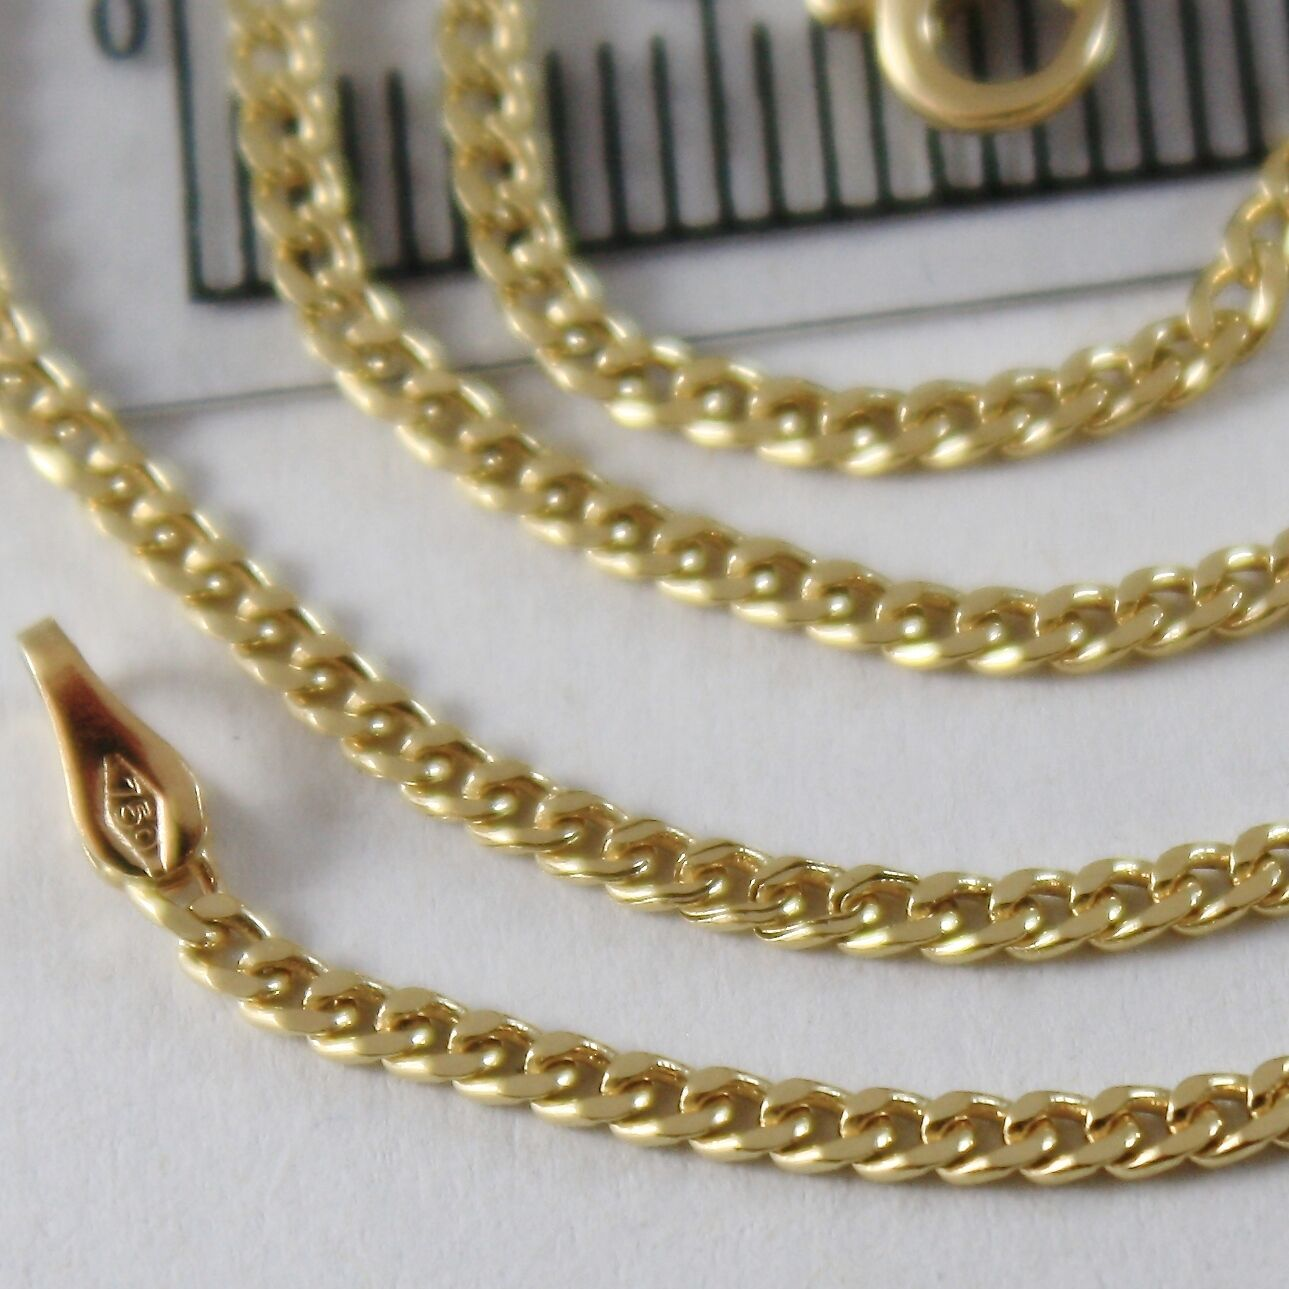 Yellow Gold Chain 750 18k, 45 cm, mini grumetta, groumette, Diameter 1.5 MM